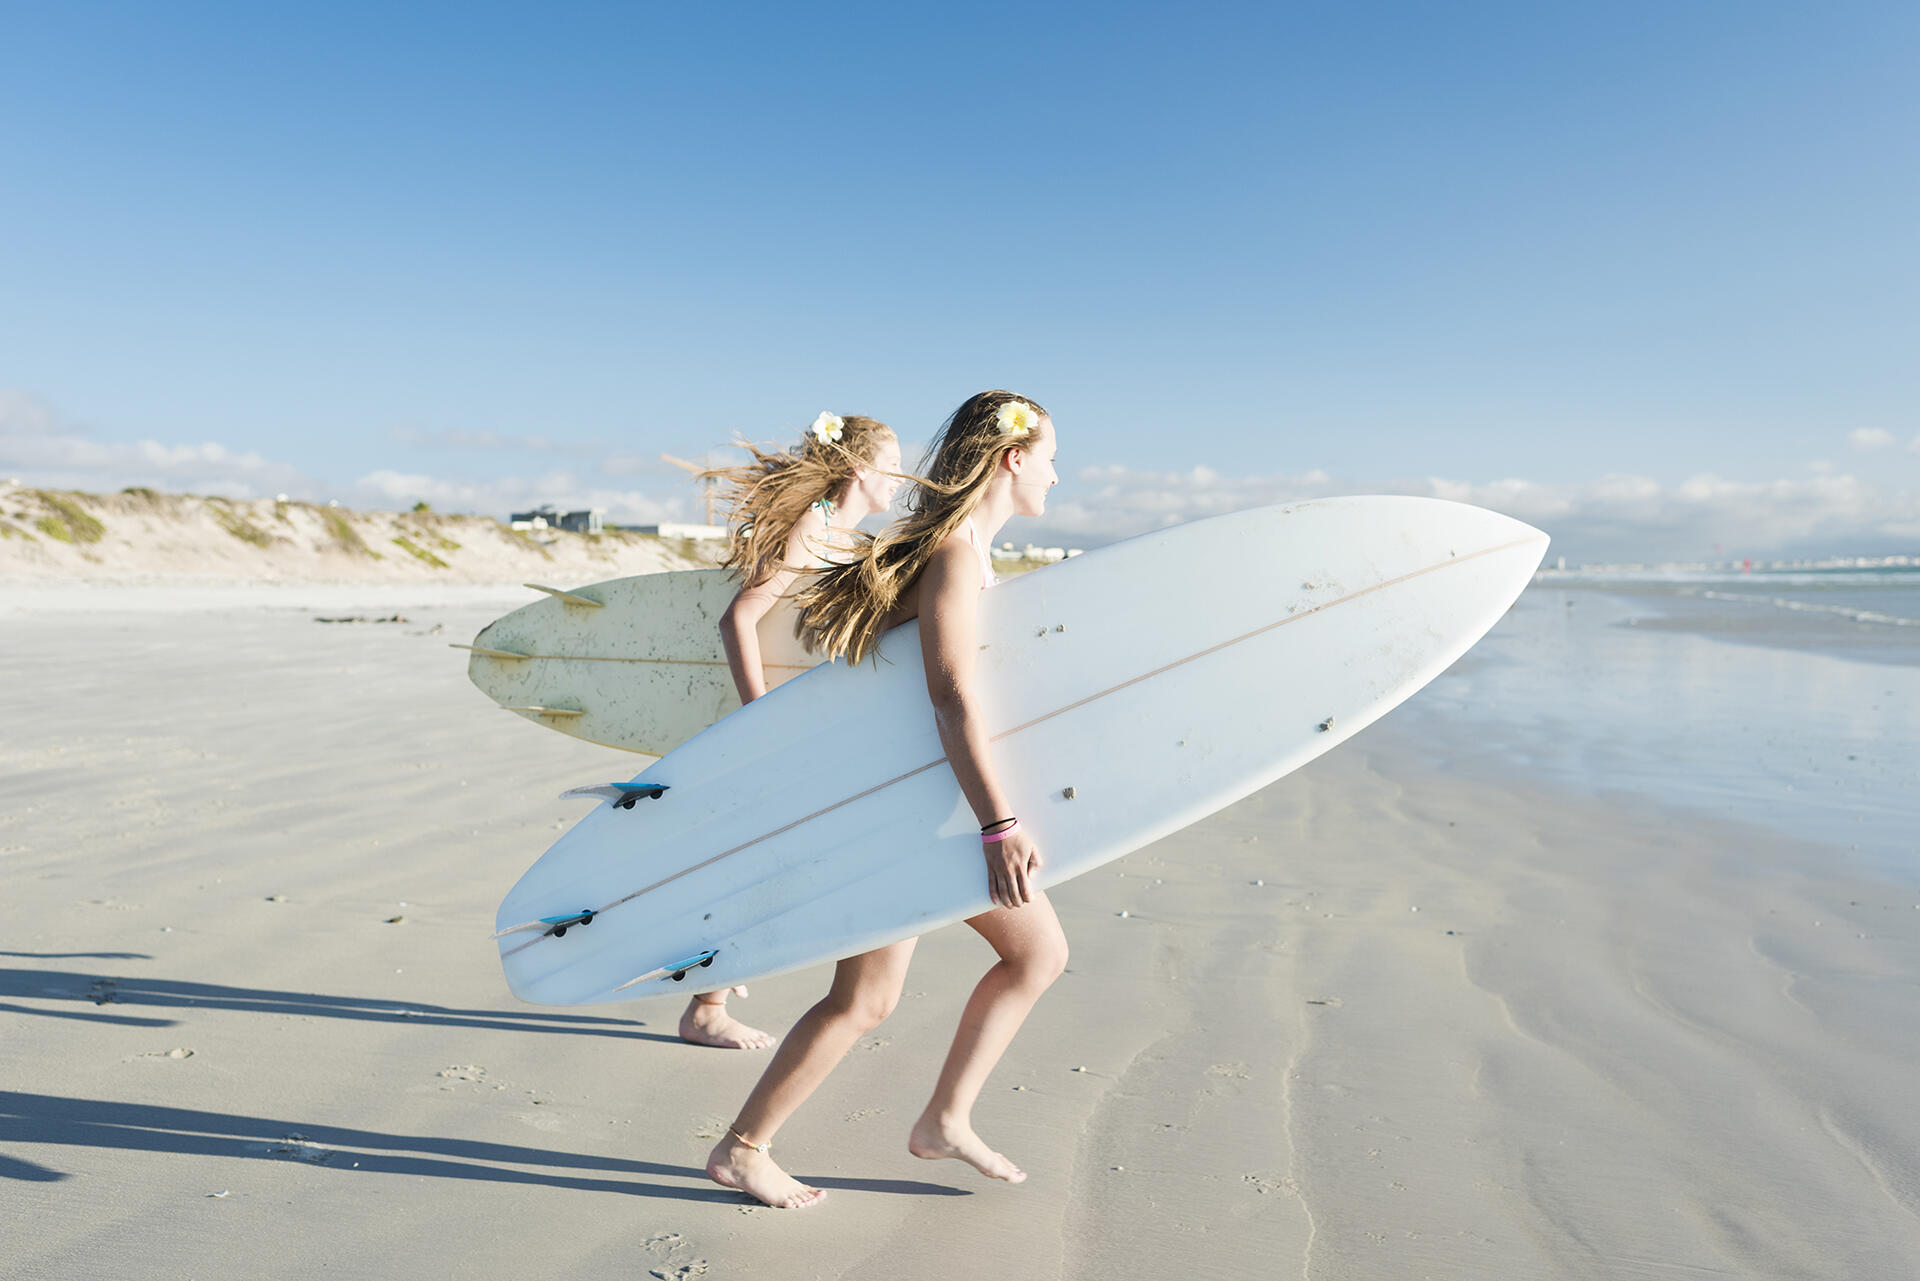 Two girls holding surfboards and walking toward the water in Day